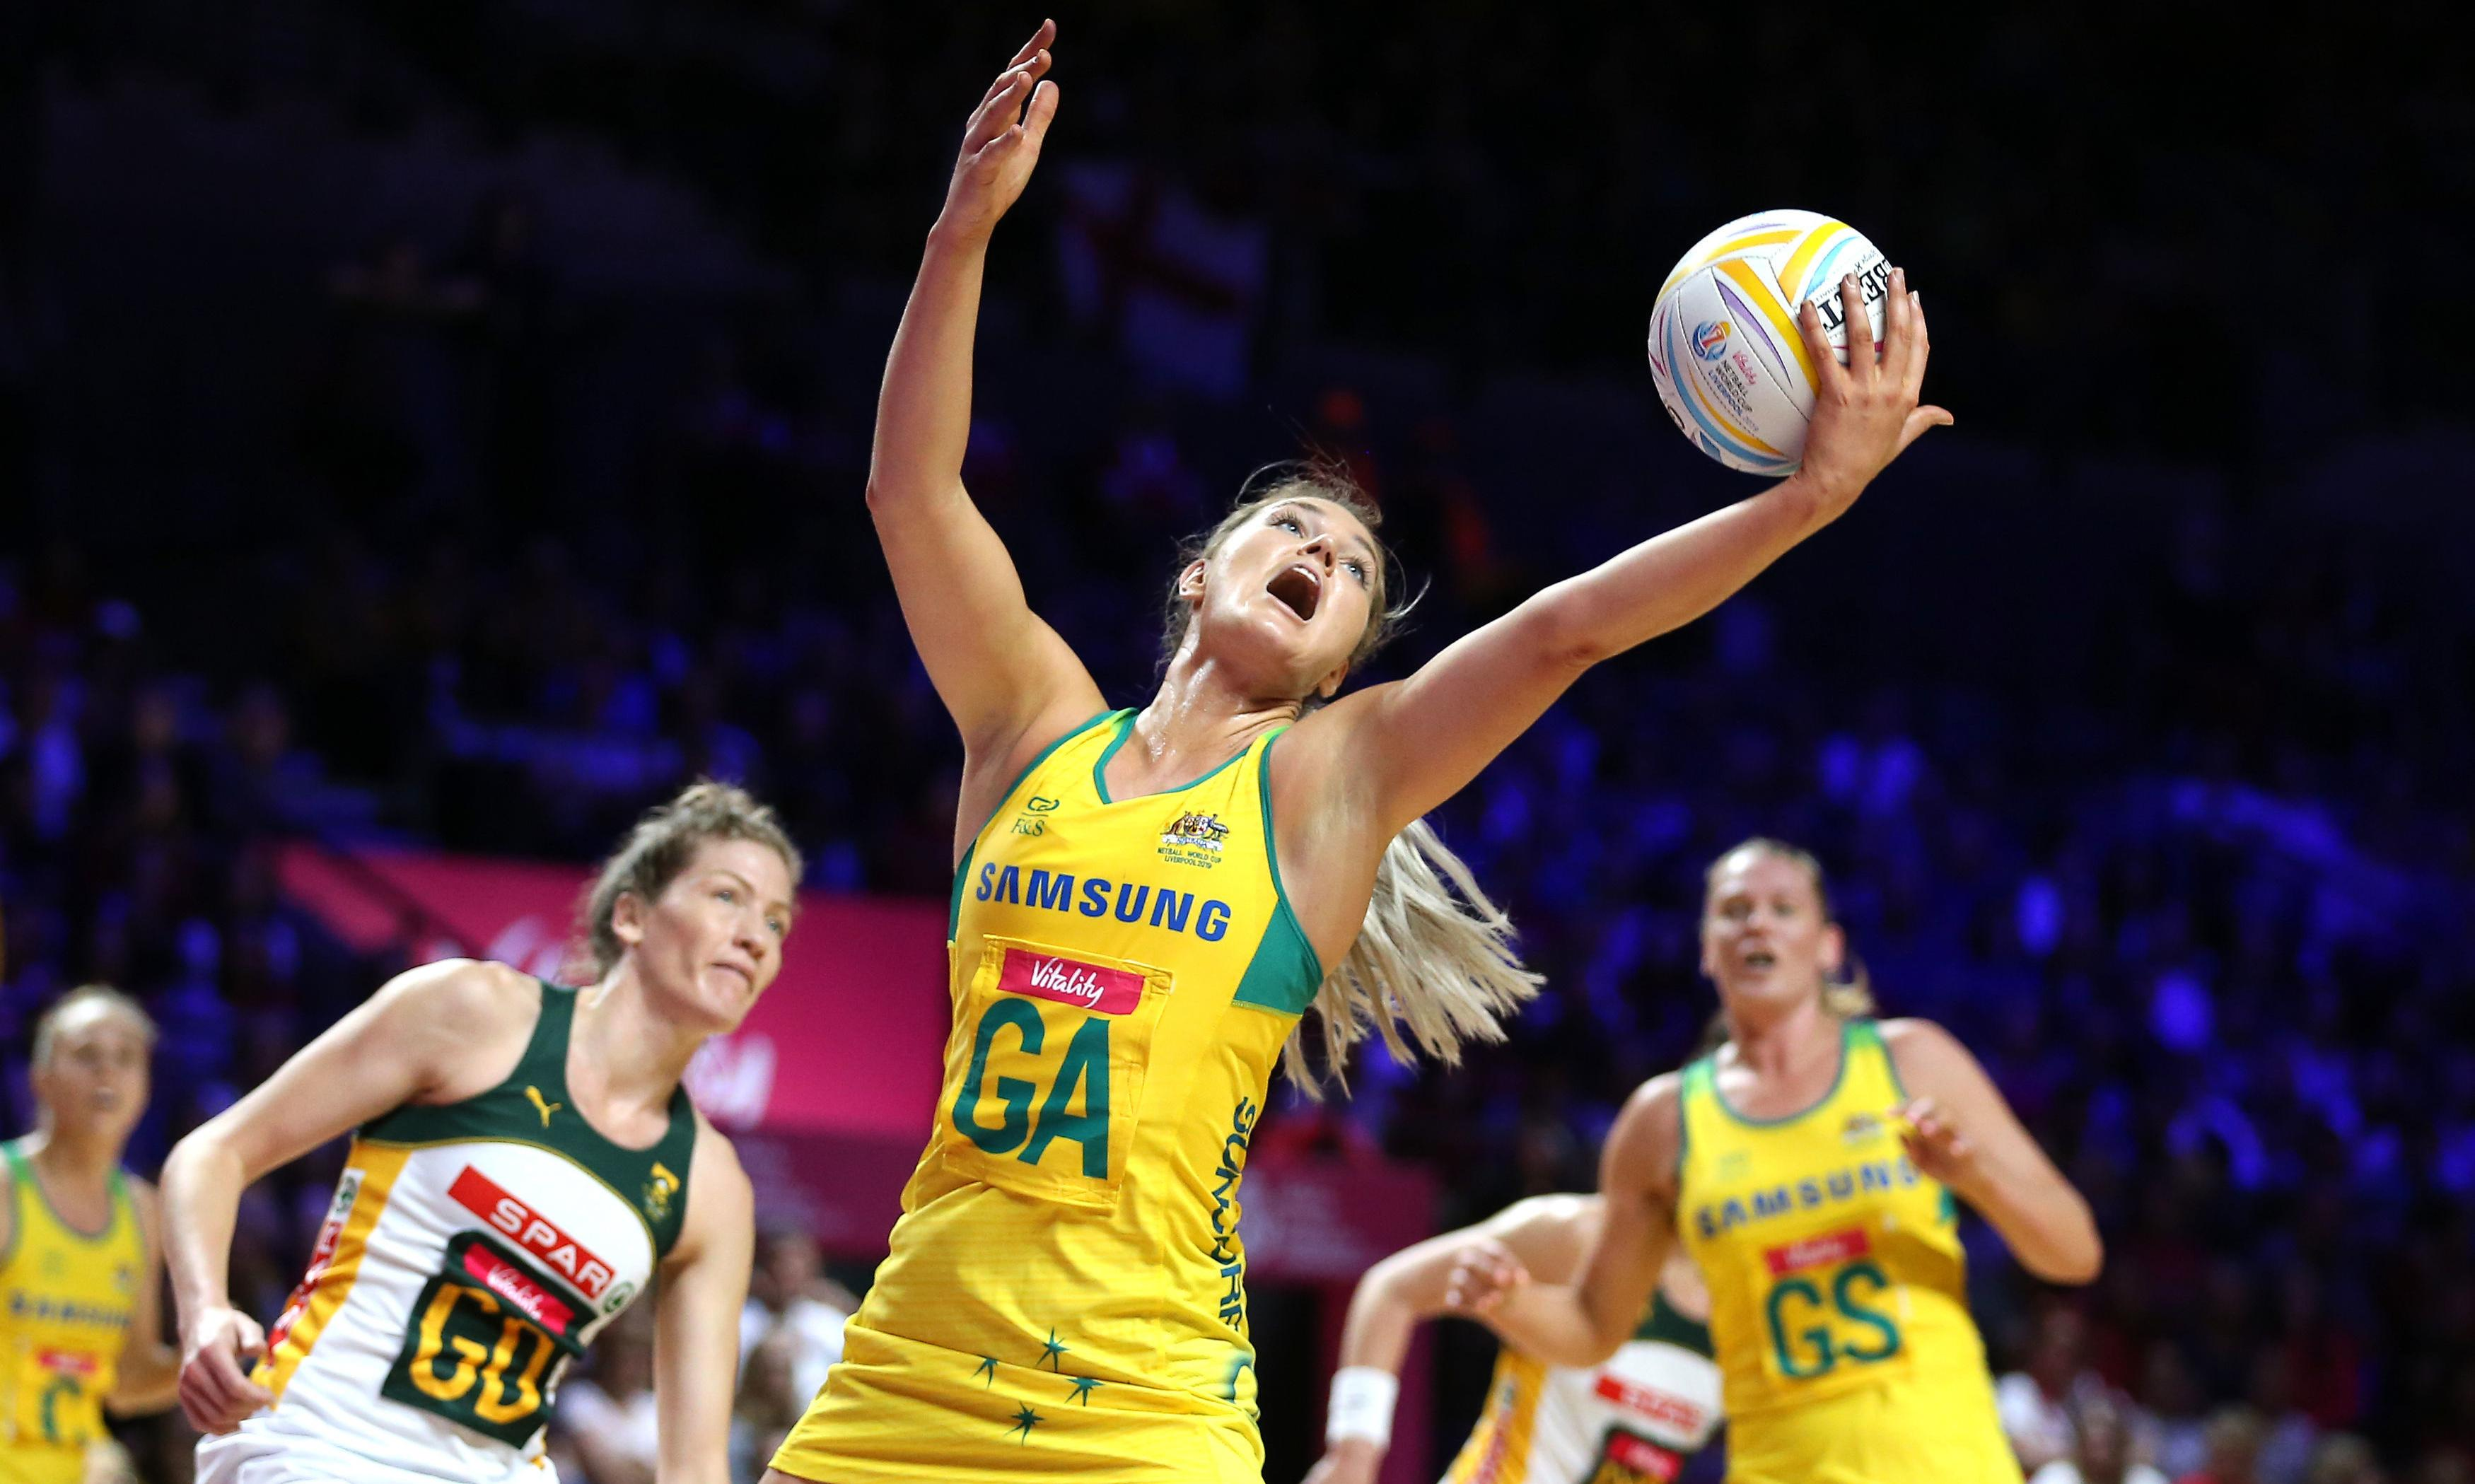 Australia squeak into Netball World Cup final after heart-stopping win over South Africa